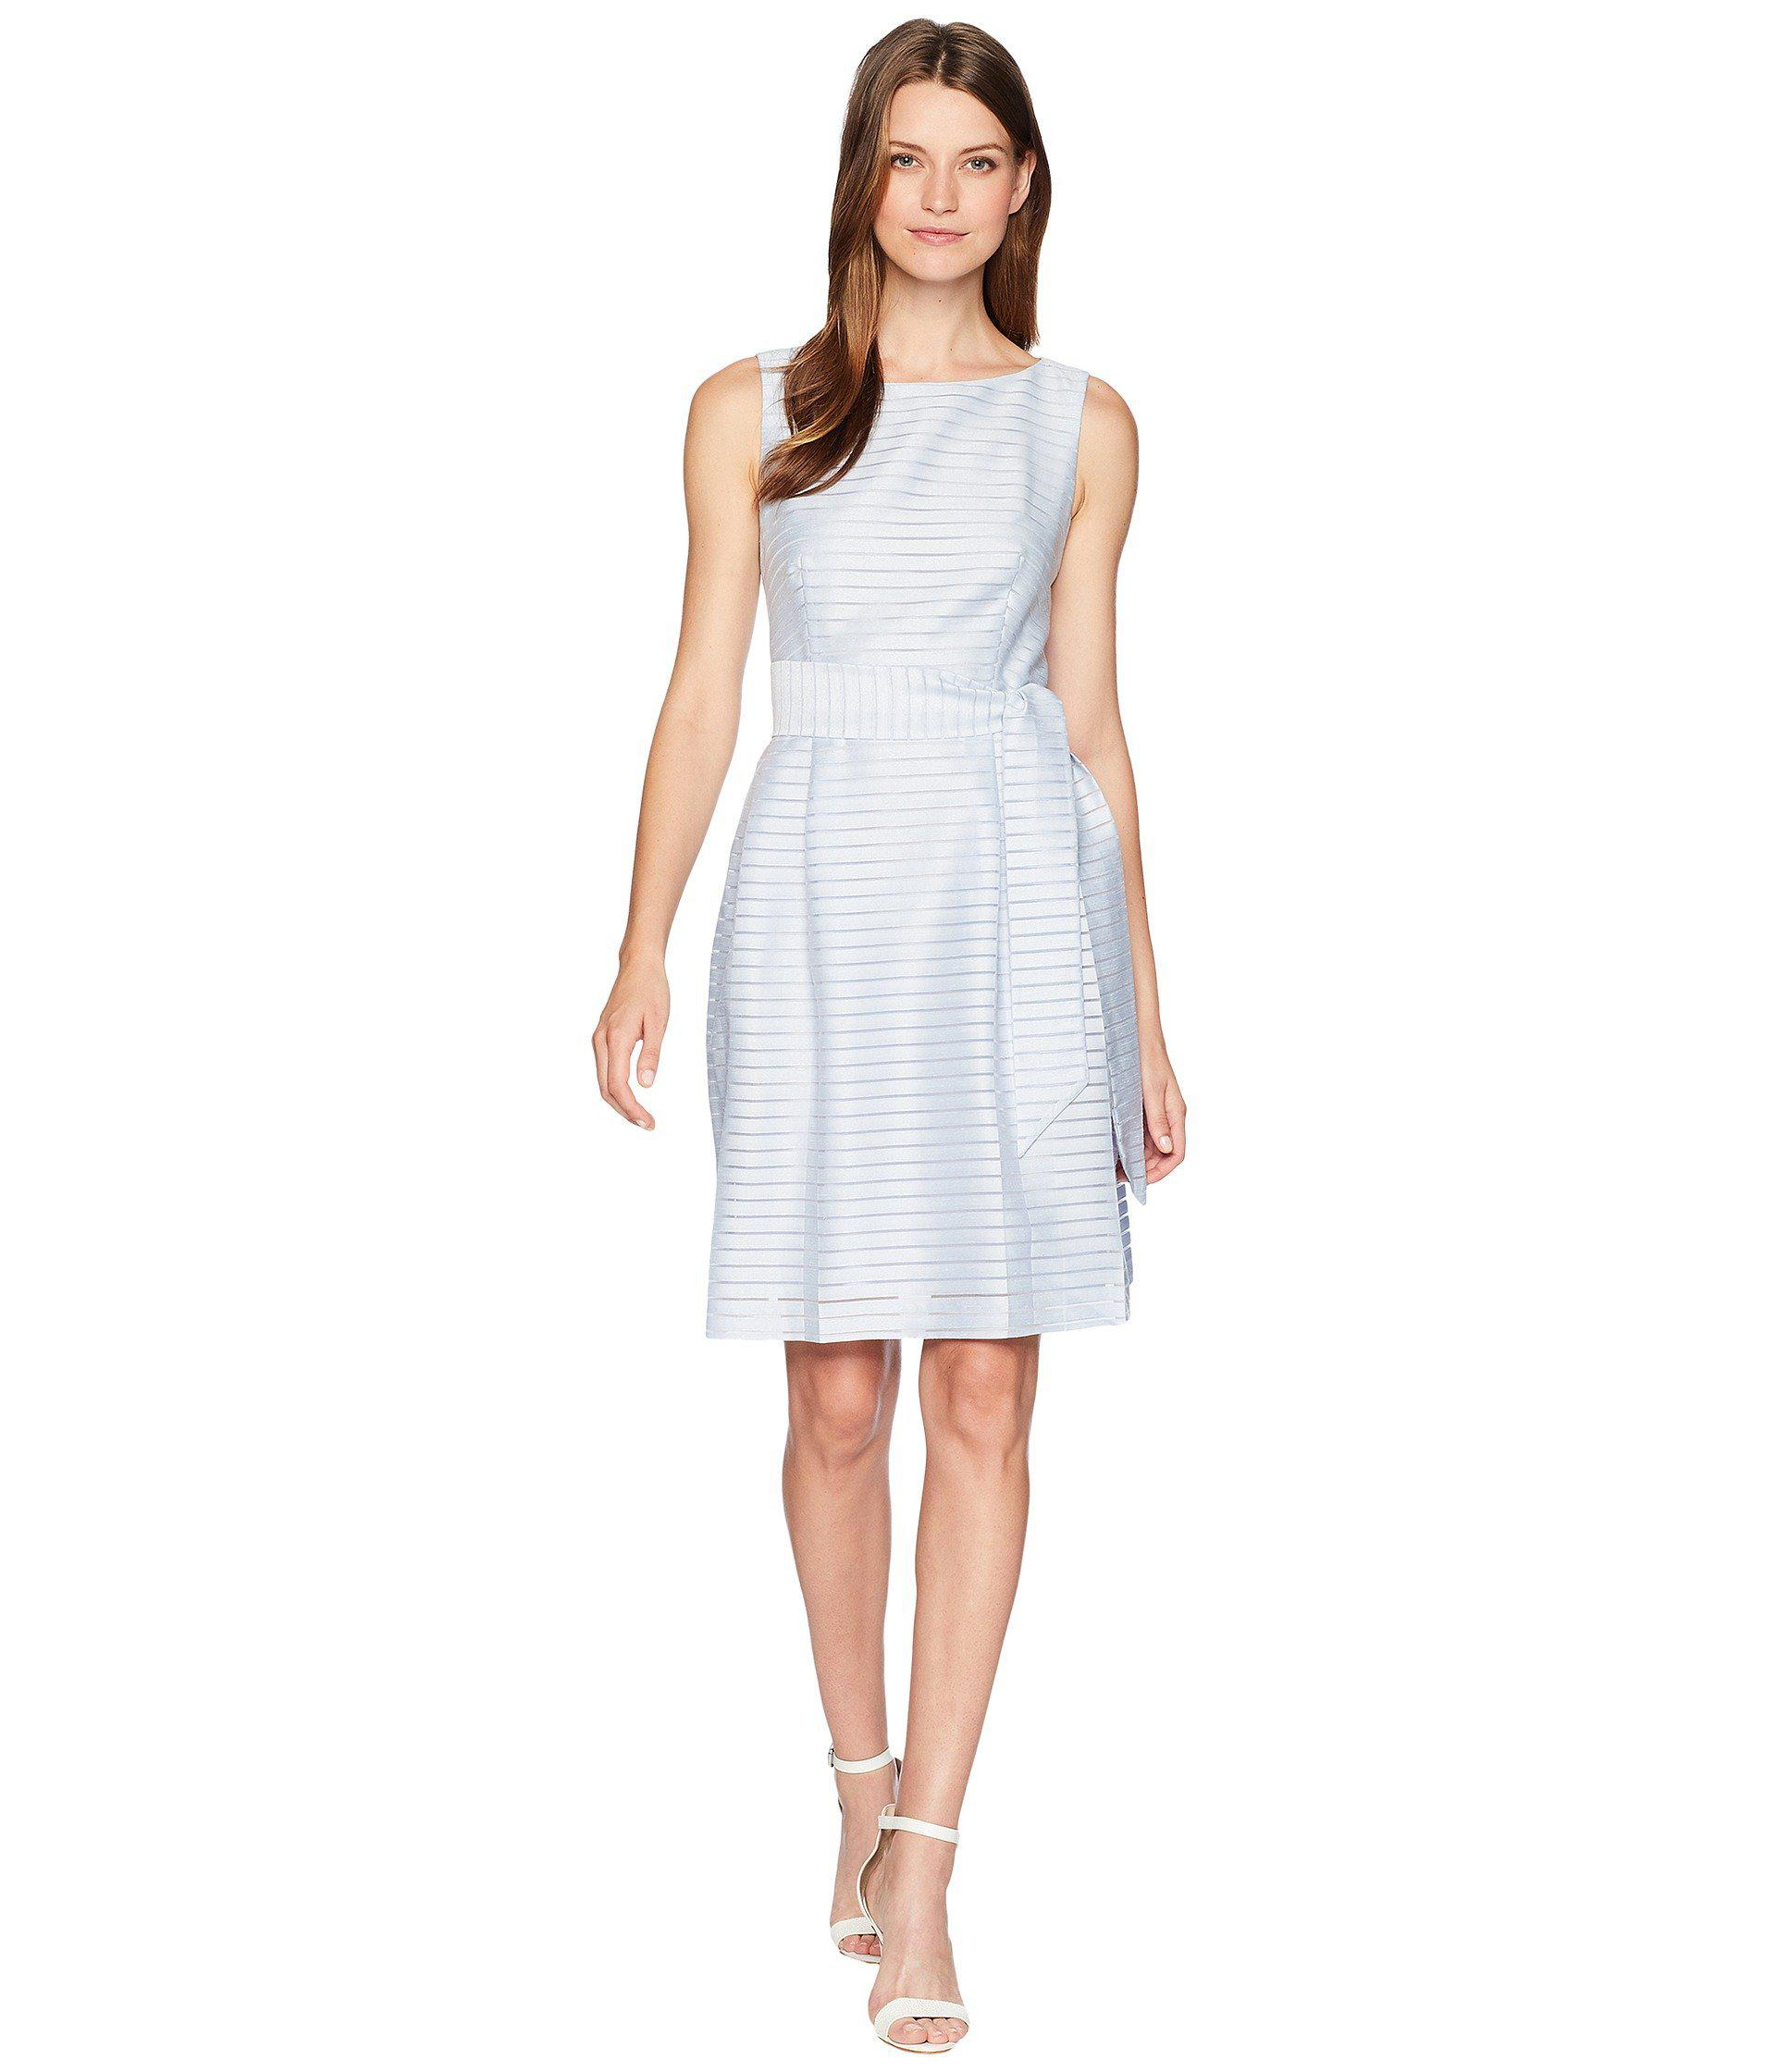 b3c840dd5f679d Lyst - Anne Klein Fit   Flare Dress With Sash in Blue - Save 10%